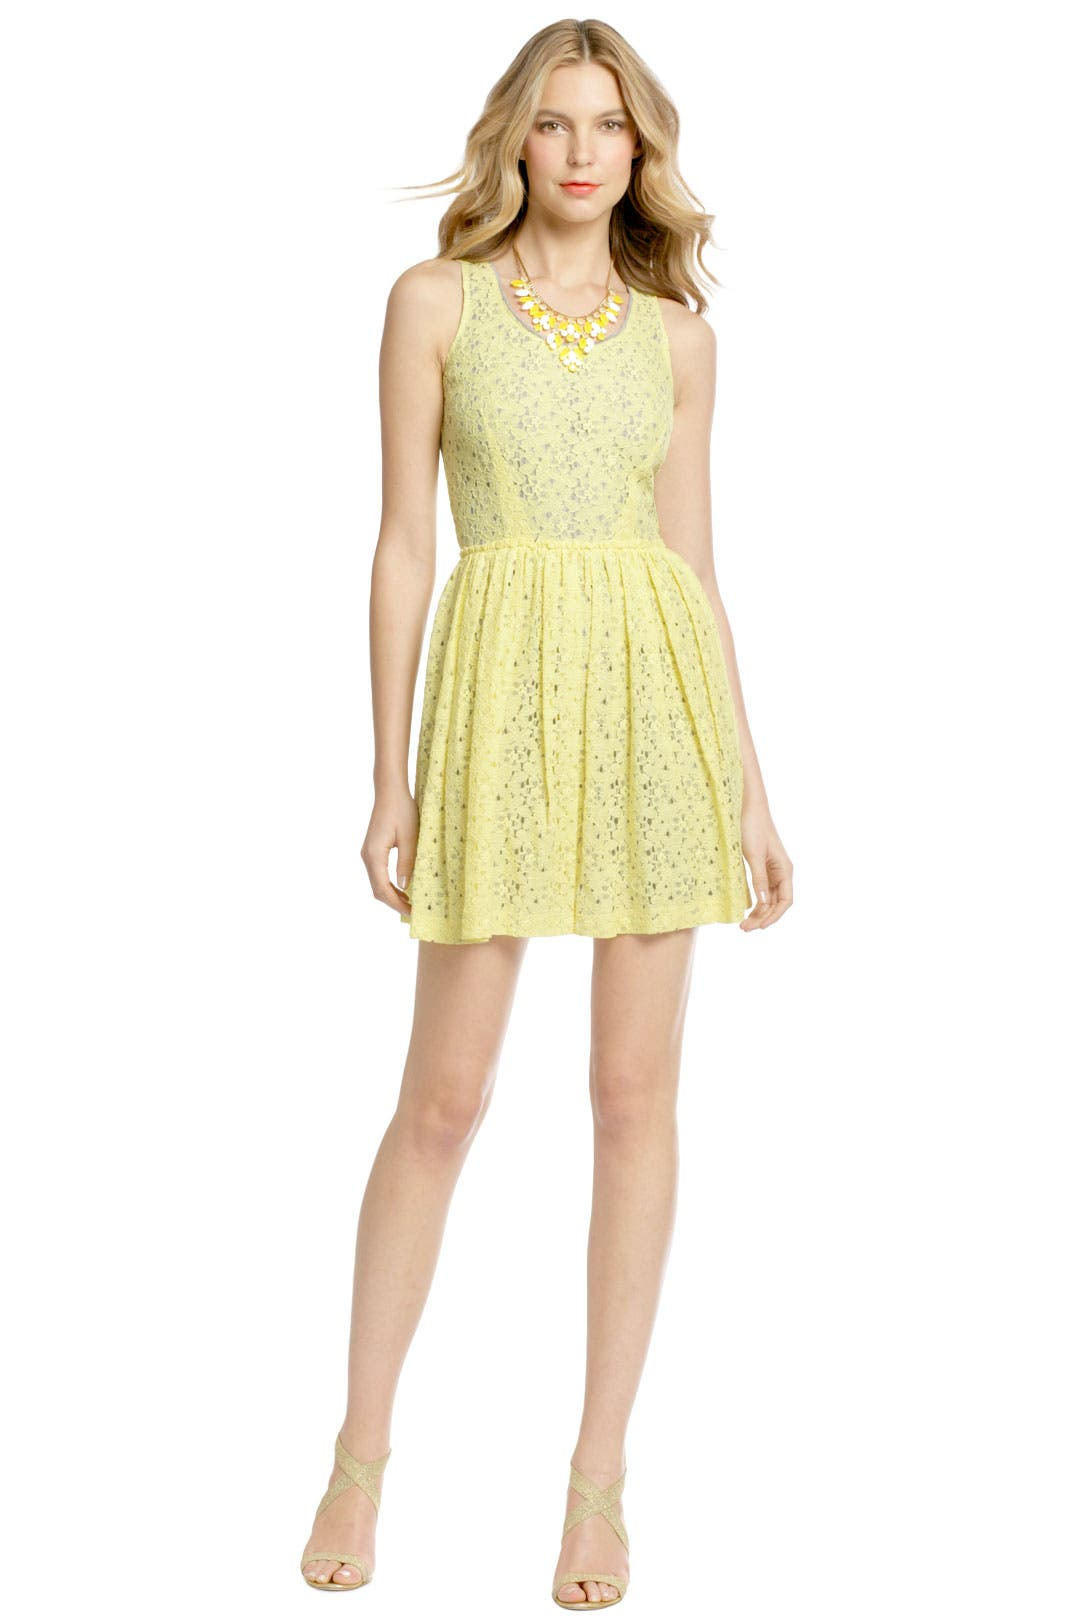 Canary Lace Party Dress by Cut 25